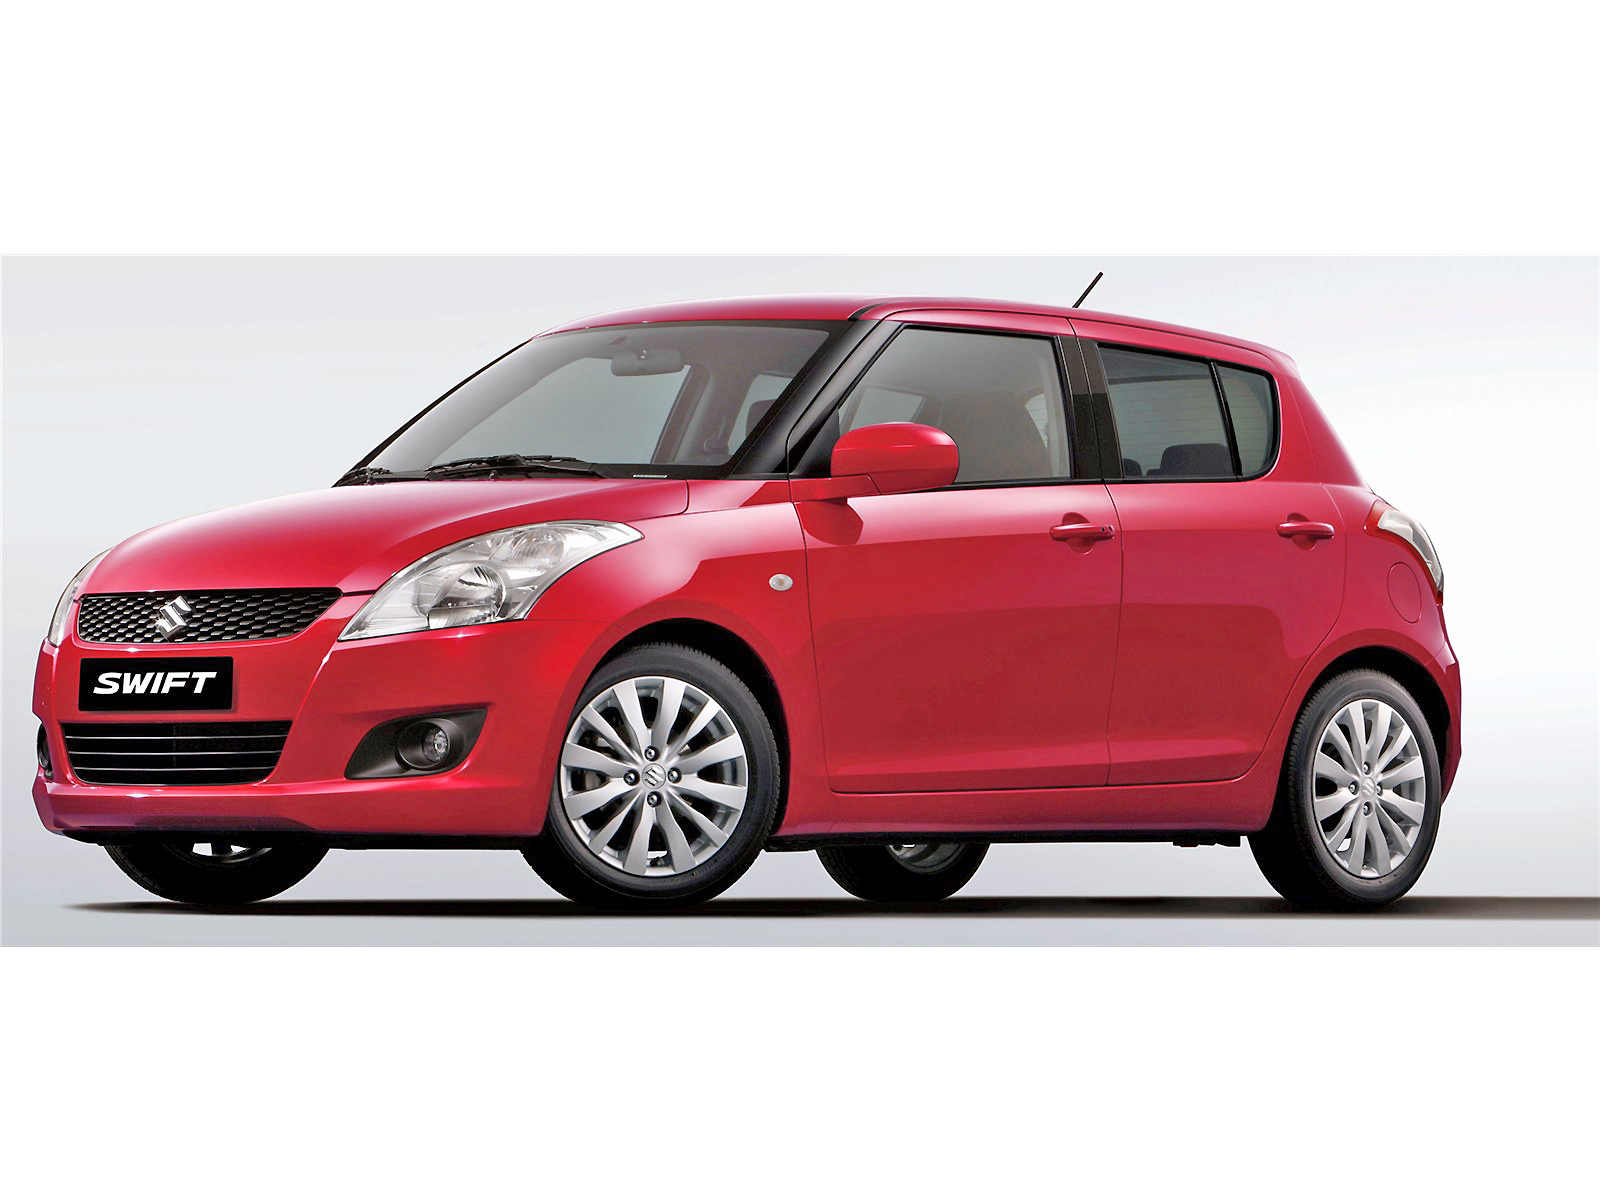 Suzuki Swift cars keep getting better and better. Racy lines and excellent detailing give the Suzuki Swift plenty of clout in a market dominated by small cars.